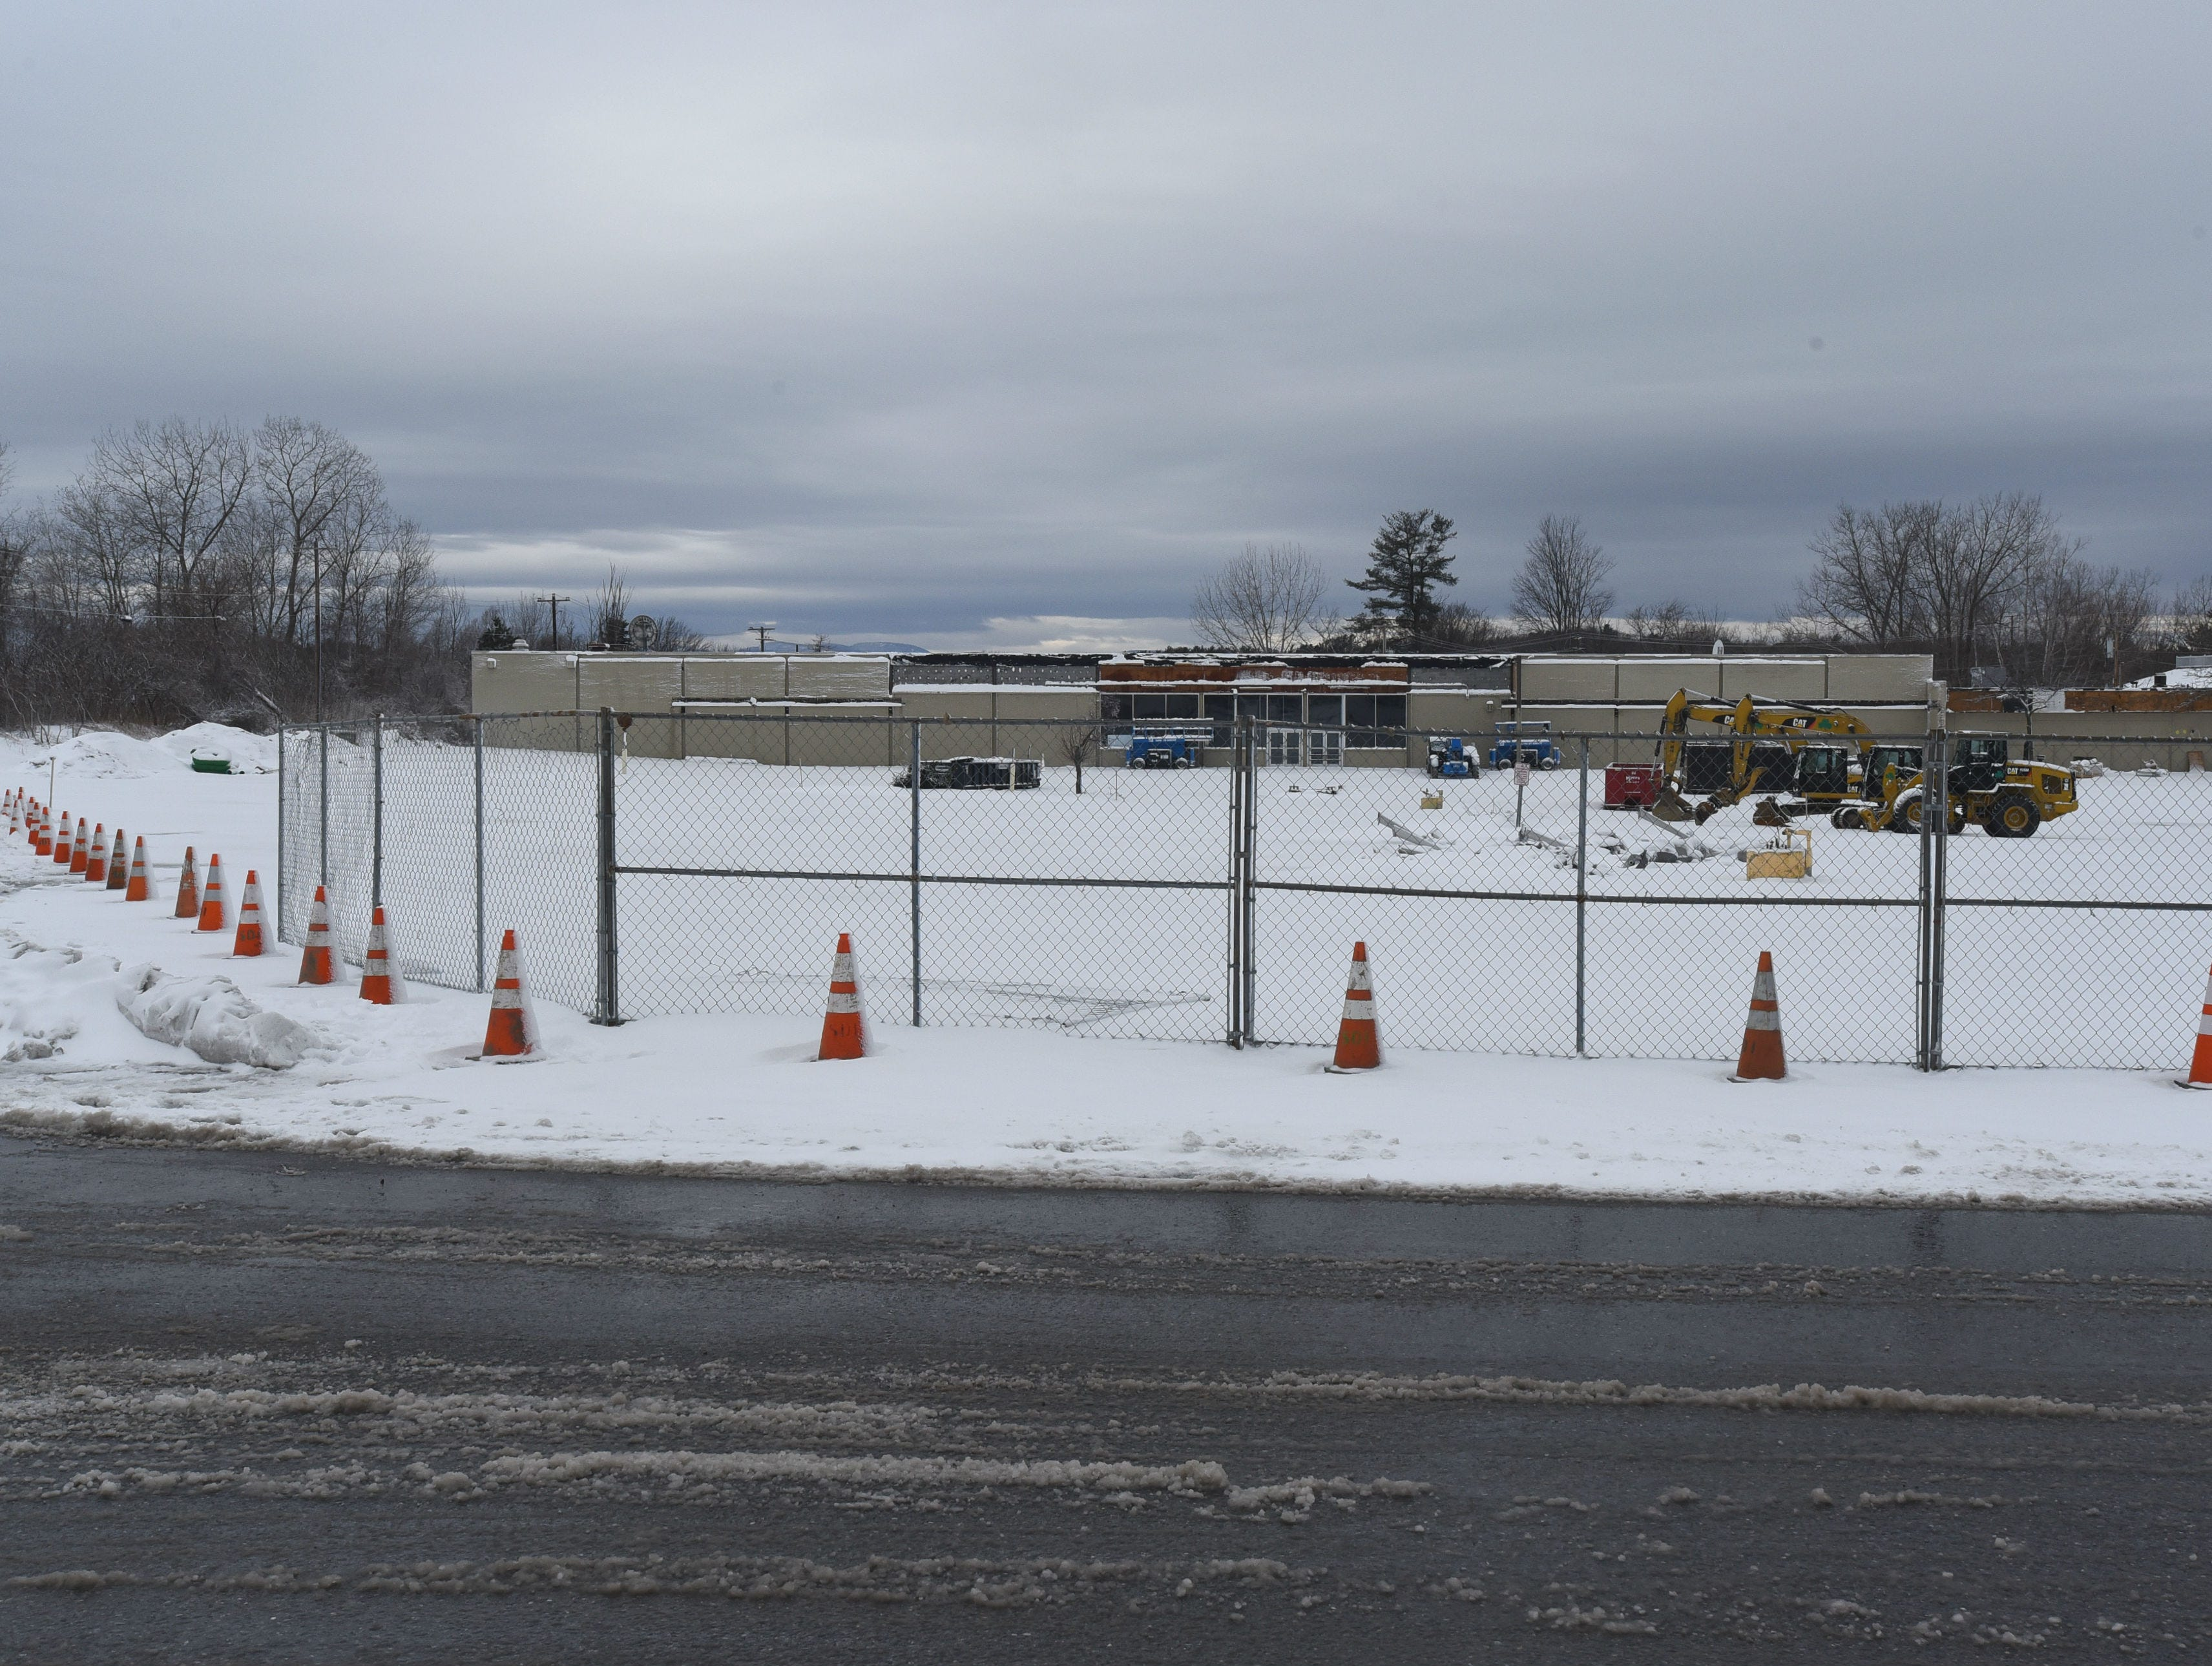 The parking lot of the former Kmart shopping center on Shelburne Road in South Burlington is fenced off on Saturday, March 23, 2019, as renovation work gets underway.